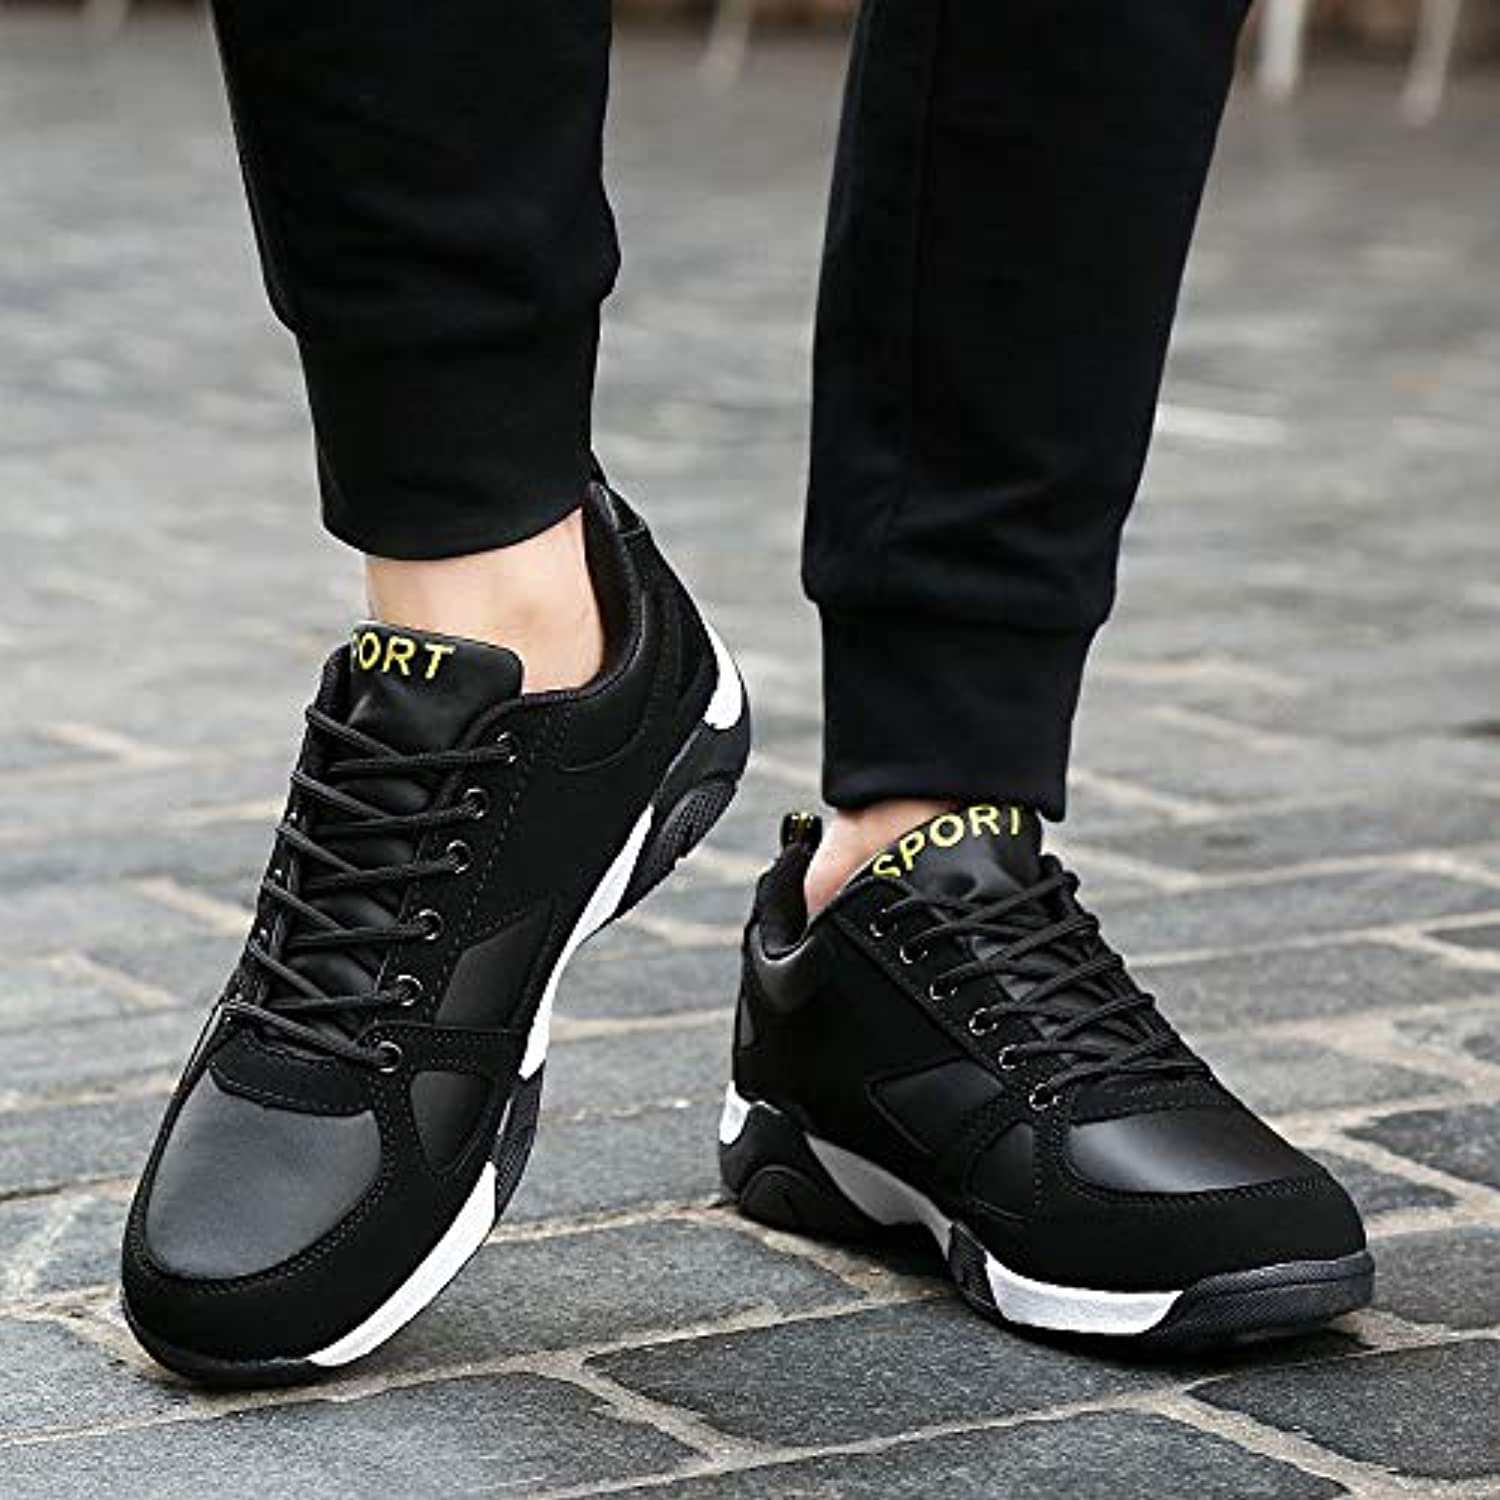 LOVDRAM Men's shoes New Spring And Autumn Winter Casual Sports shoes Men'S Travel Running Leather Men'S shoes 36-45 Yards